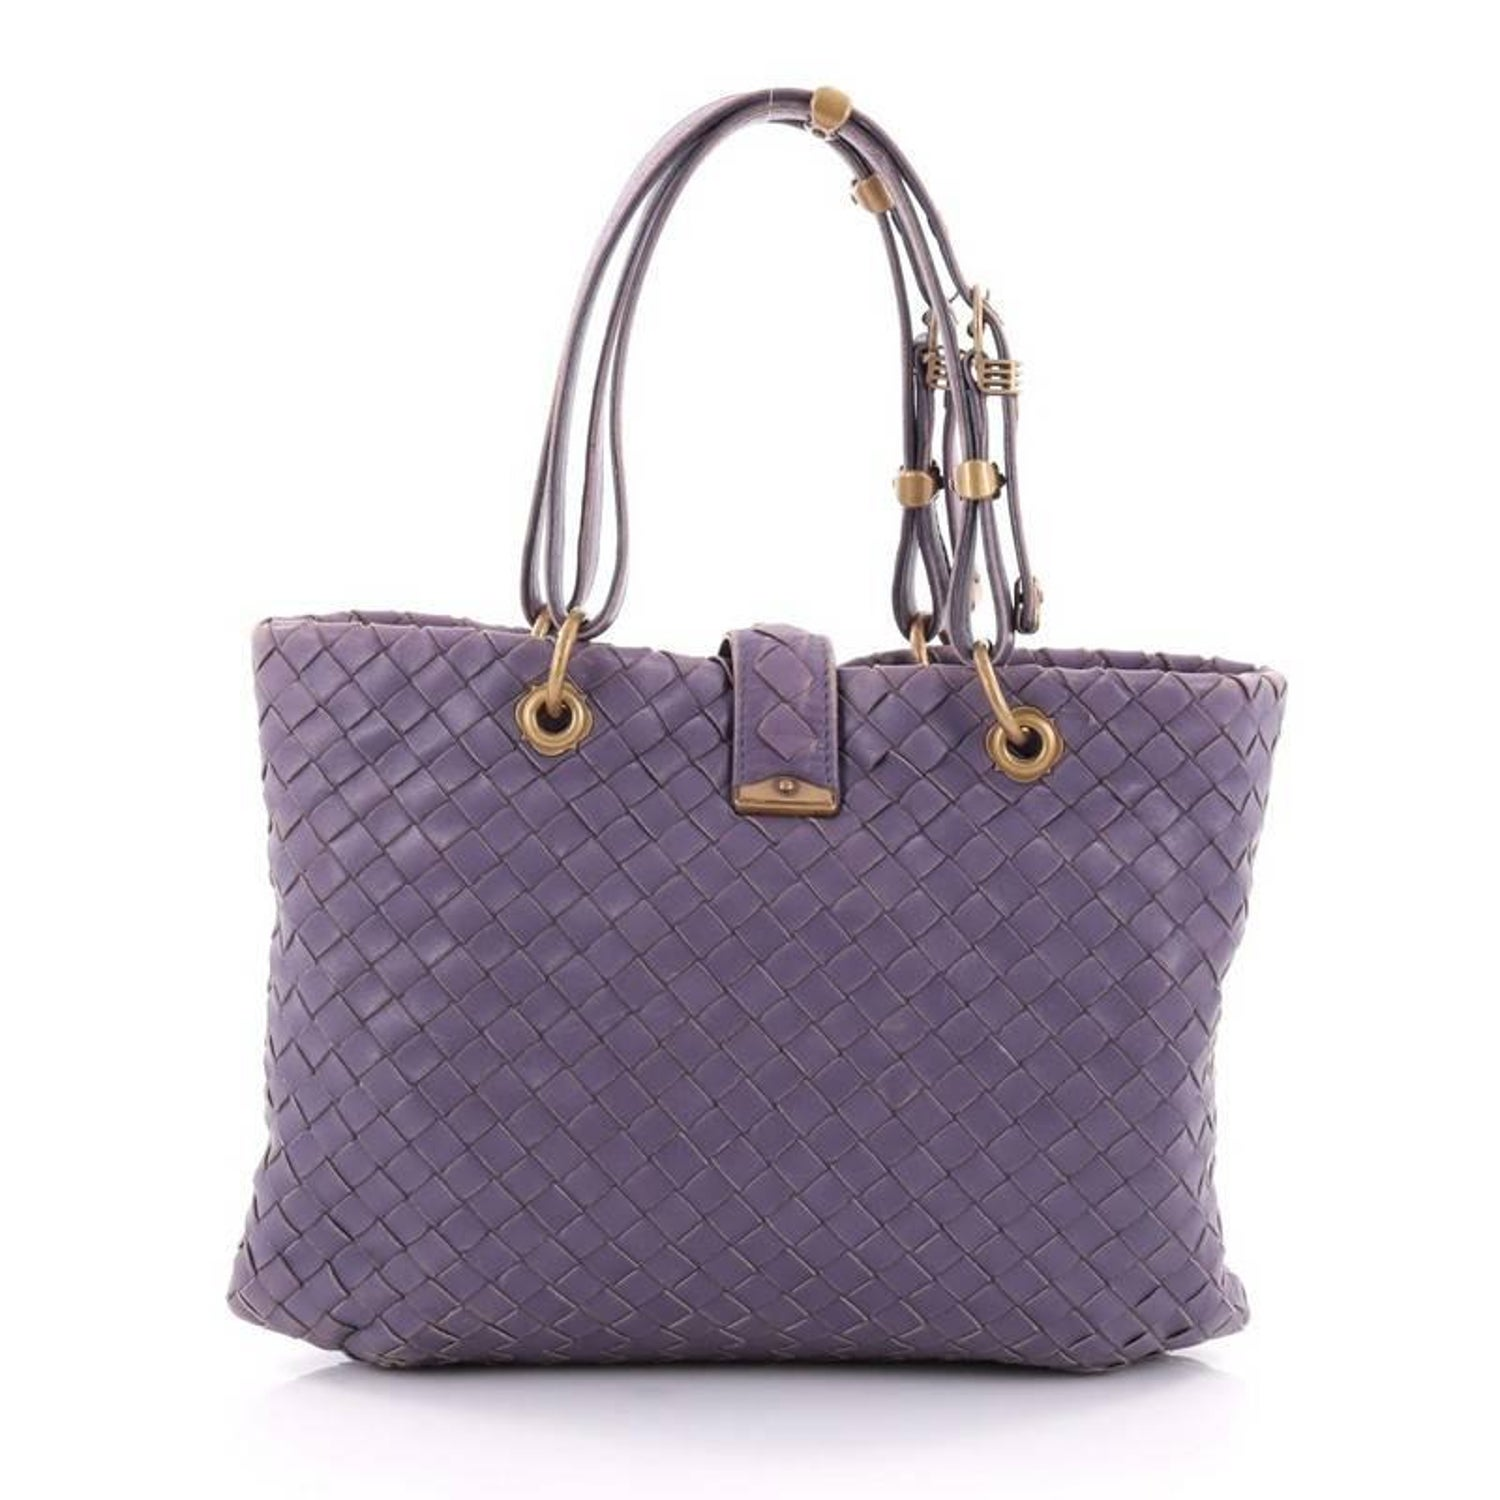 cc28057e64 Bottega Veneta Capri Tote Intrecciato Nappa Small at 1stdibs